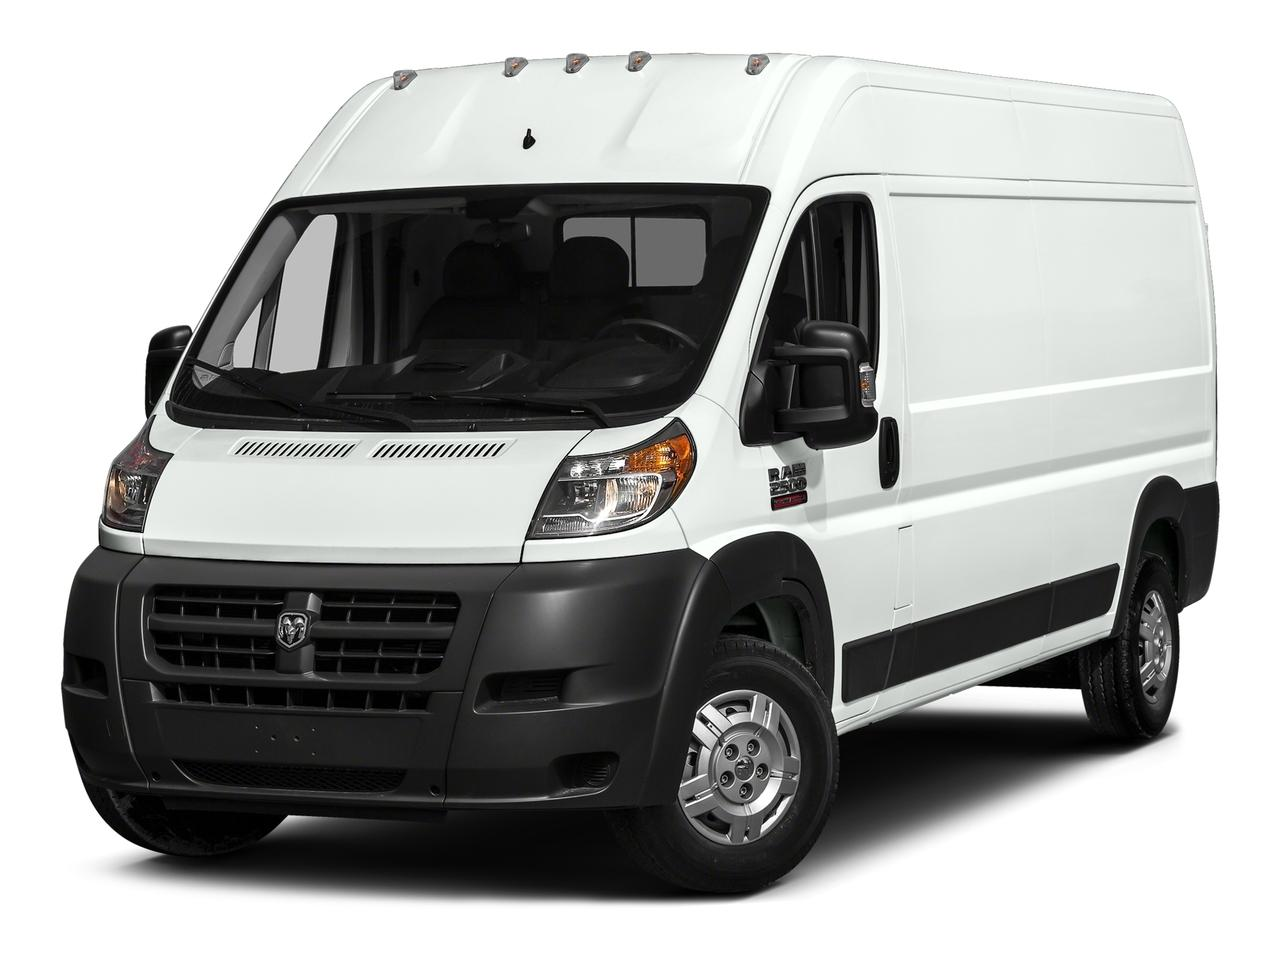 2017 Ram ProMaster Cargo Van Vehicle Photo in Portland, OR 97225